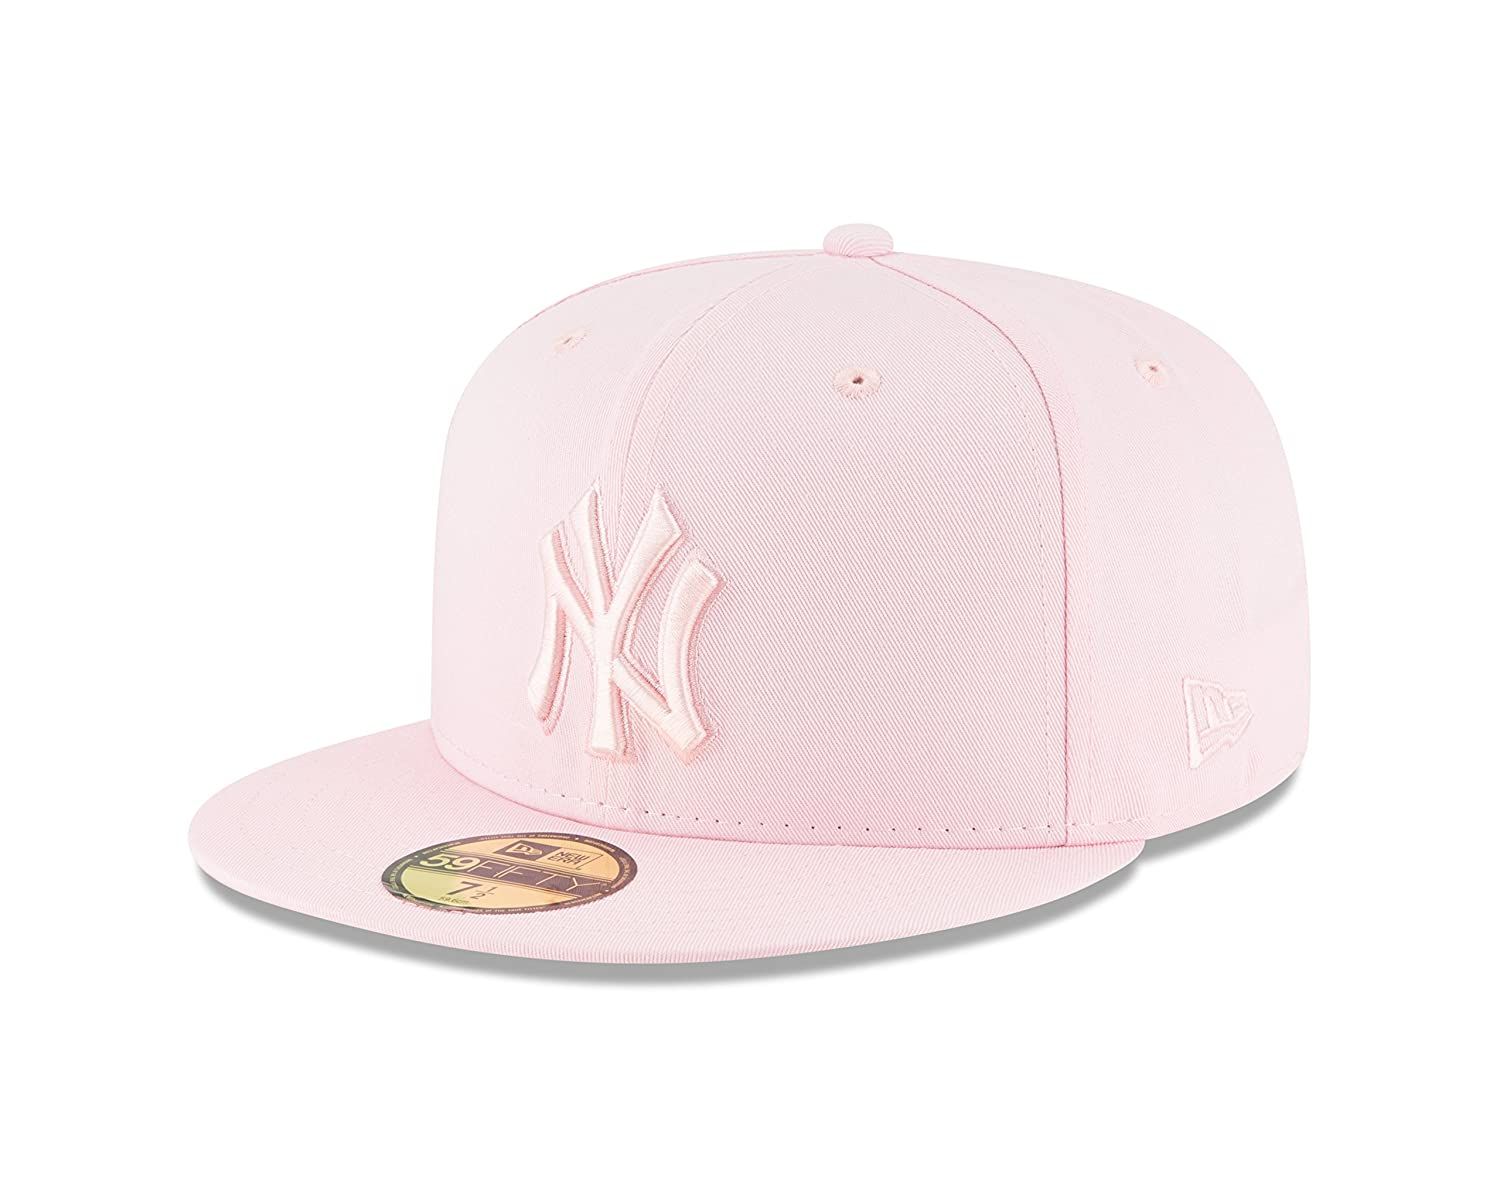 Amazon.com   New Era New York Yankees Tonal Pastel PINK Fitted 59Fifty MLB  Hat   Sports   Outdoors 340704971a5